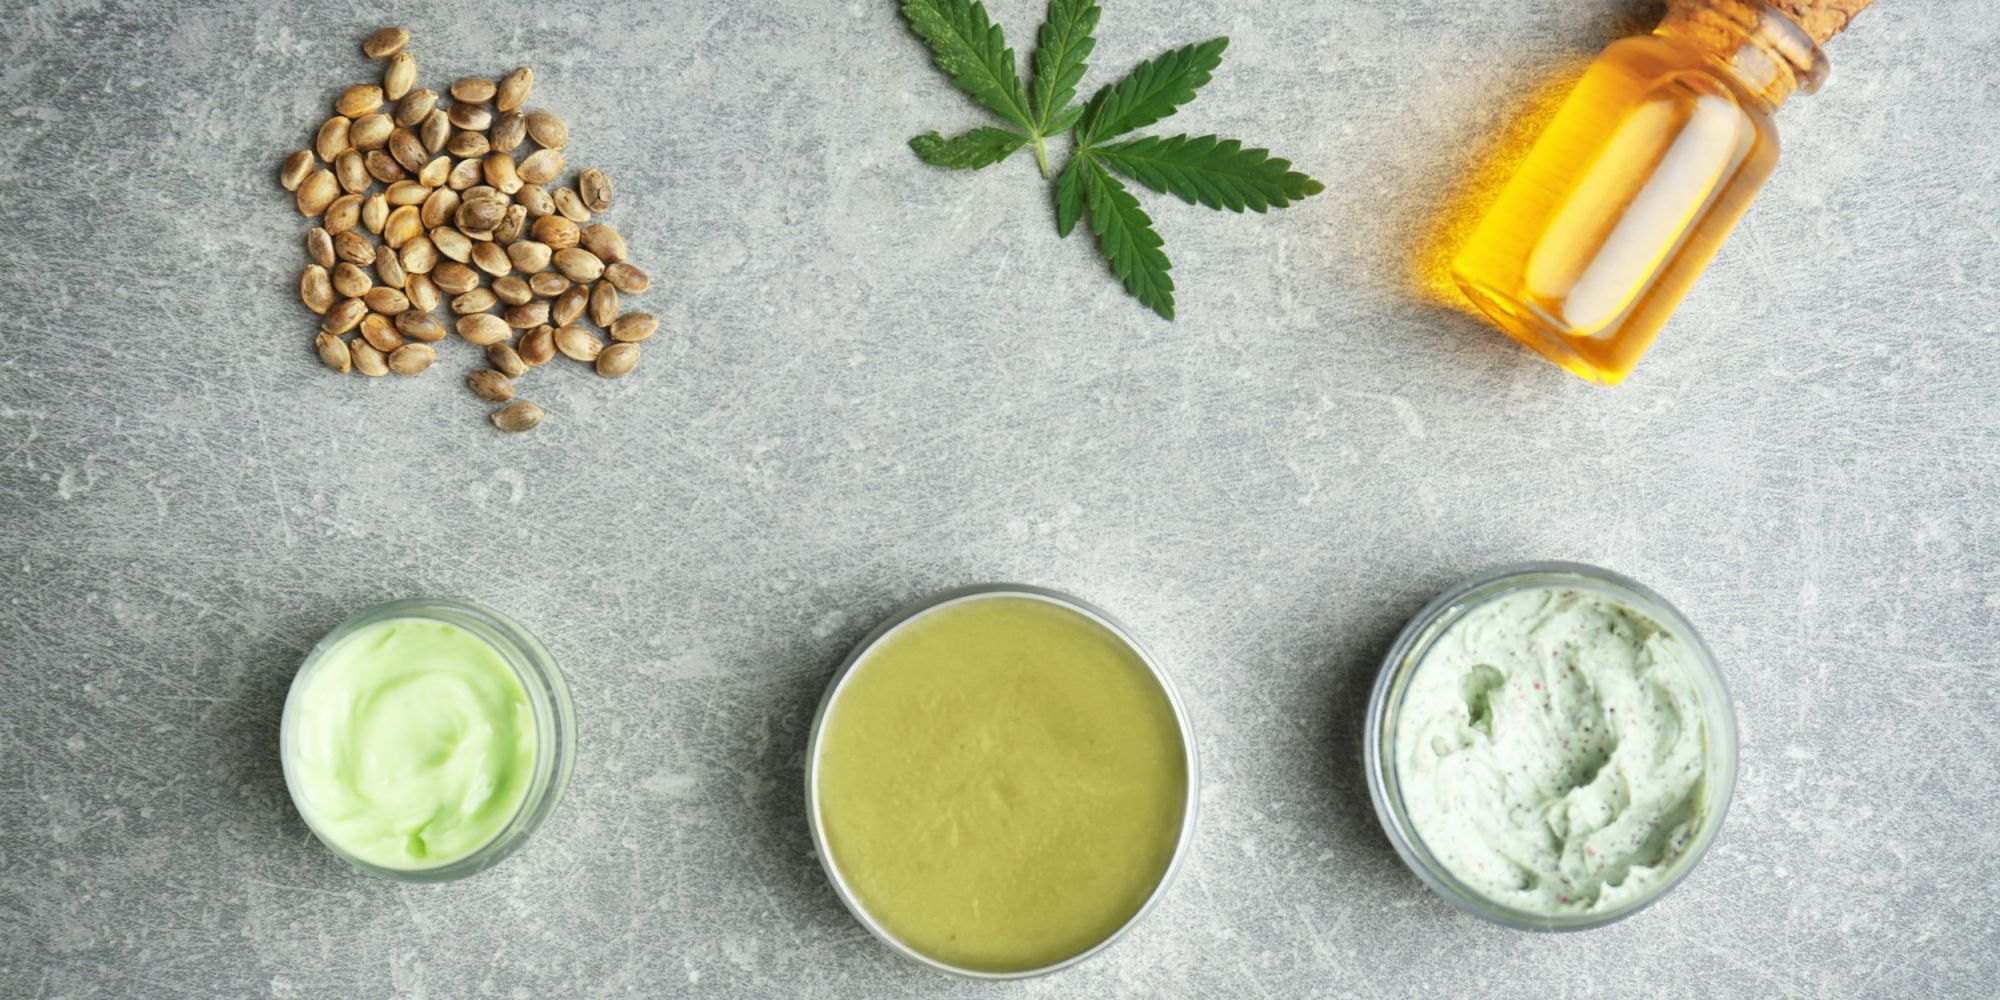 Beauty Brands Navigate The Legally Murky Waters Of Selling CBD Products Online